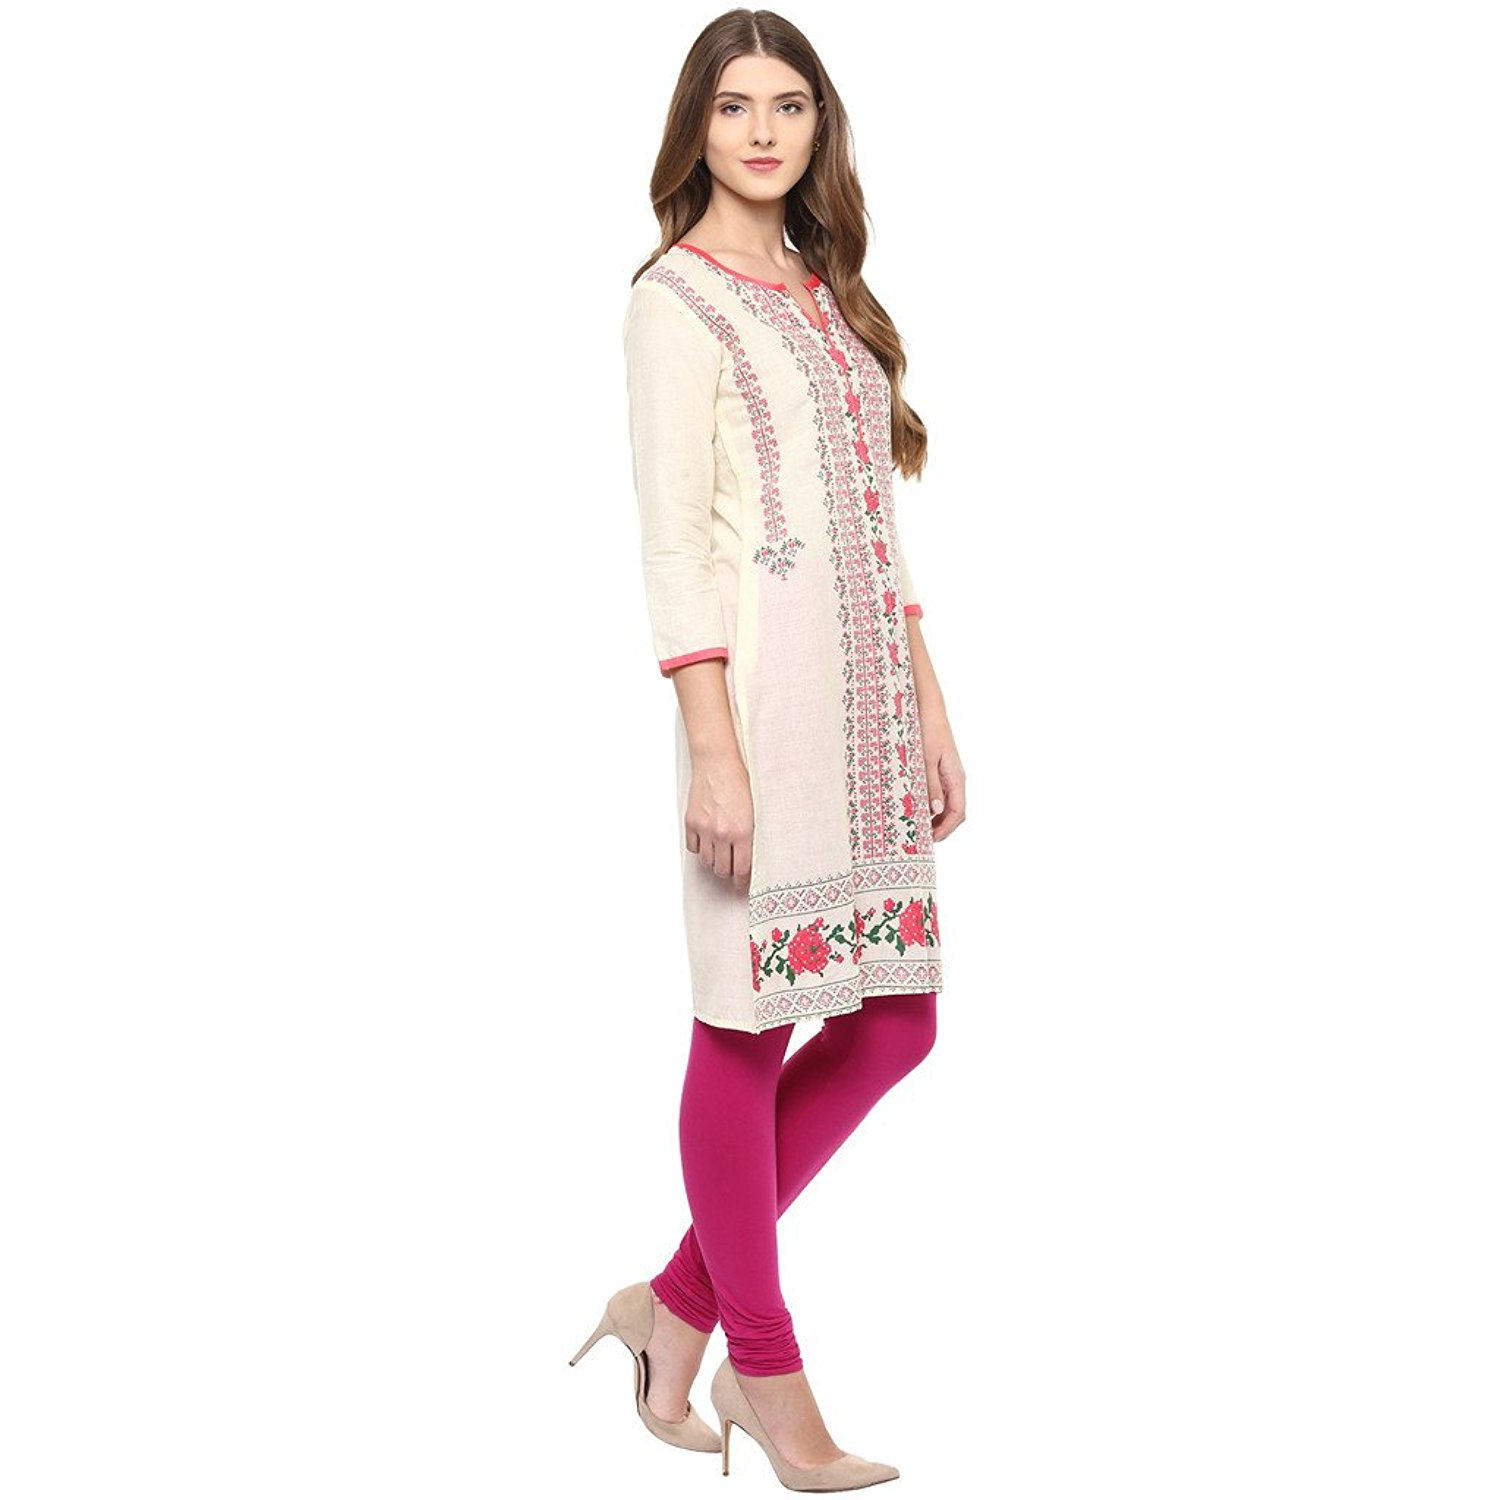 Rangeelo Rajasthan Printed Women's Long Straight Cotton Kurta